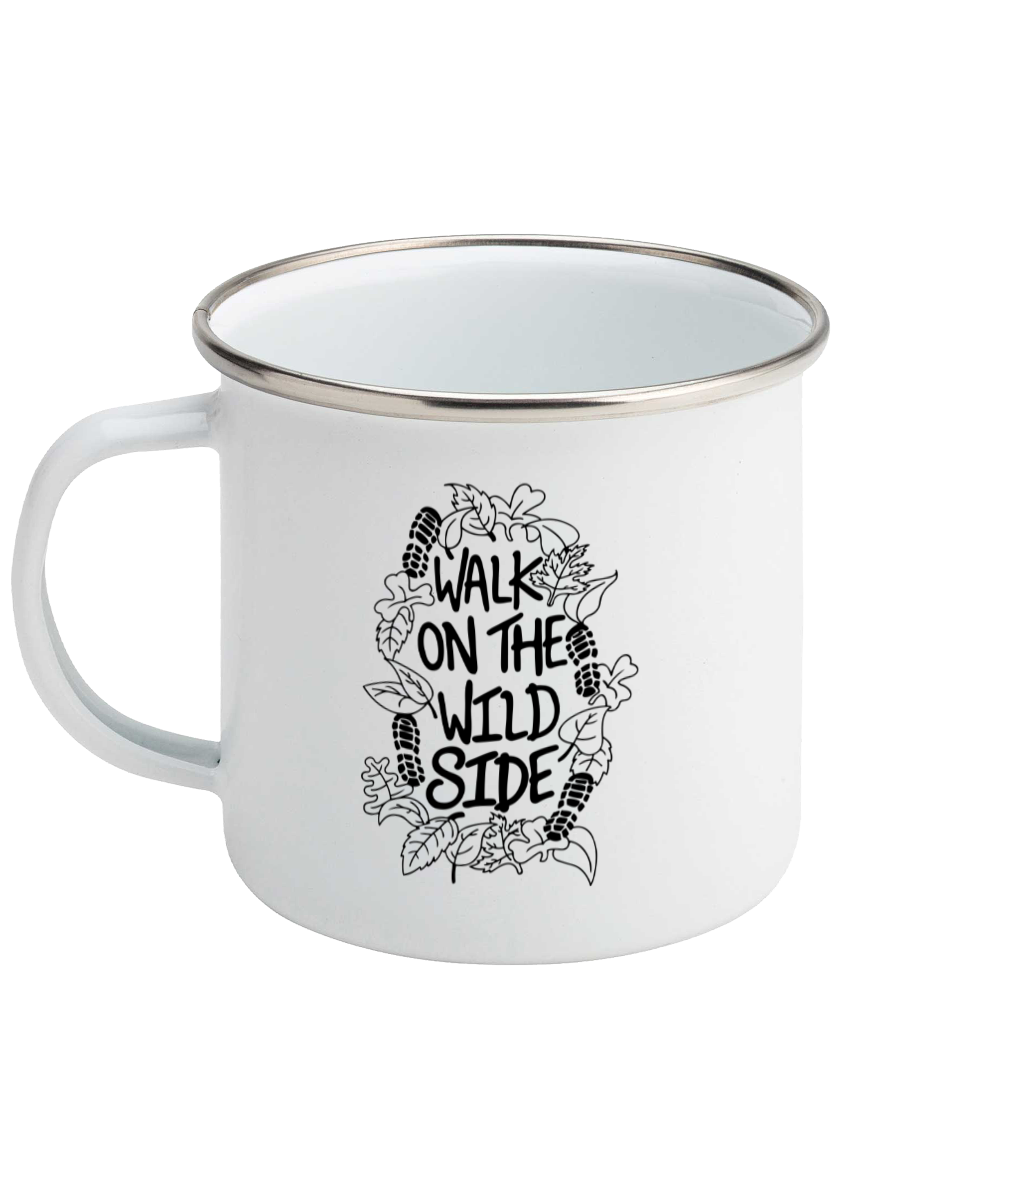 Walk On The Wild Side - Enamel Mug, Suggested Products, Pen and Ink Studios Adventure Clothing